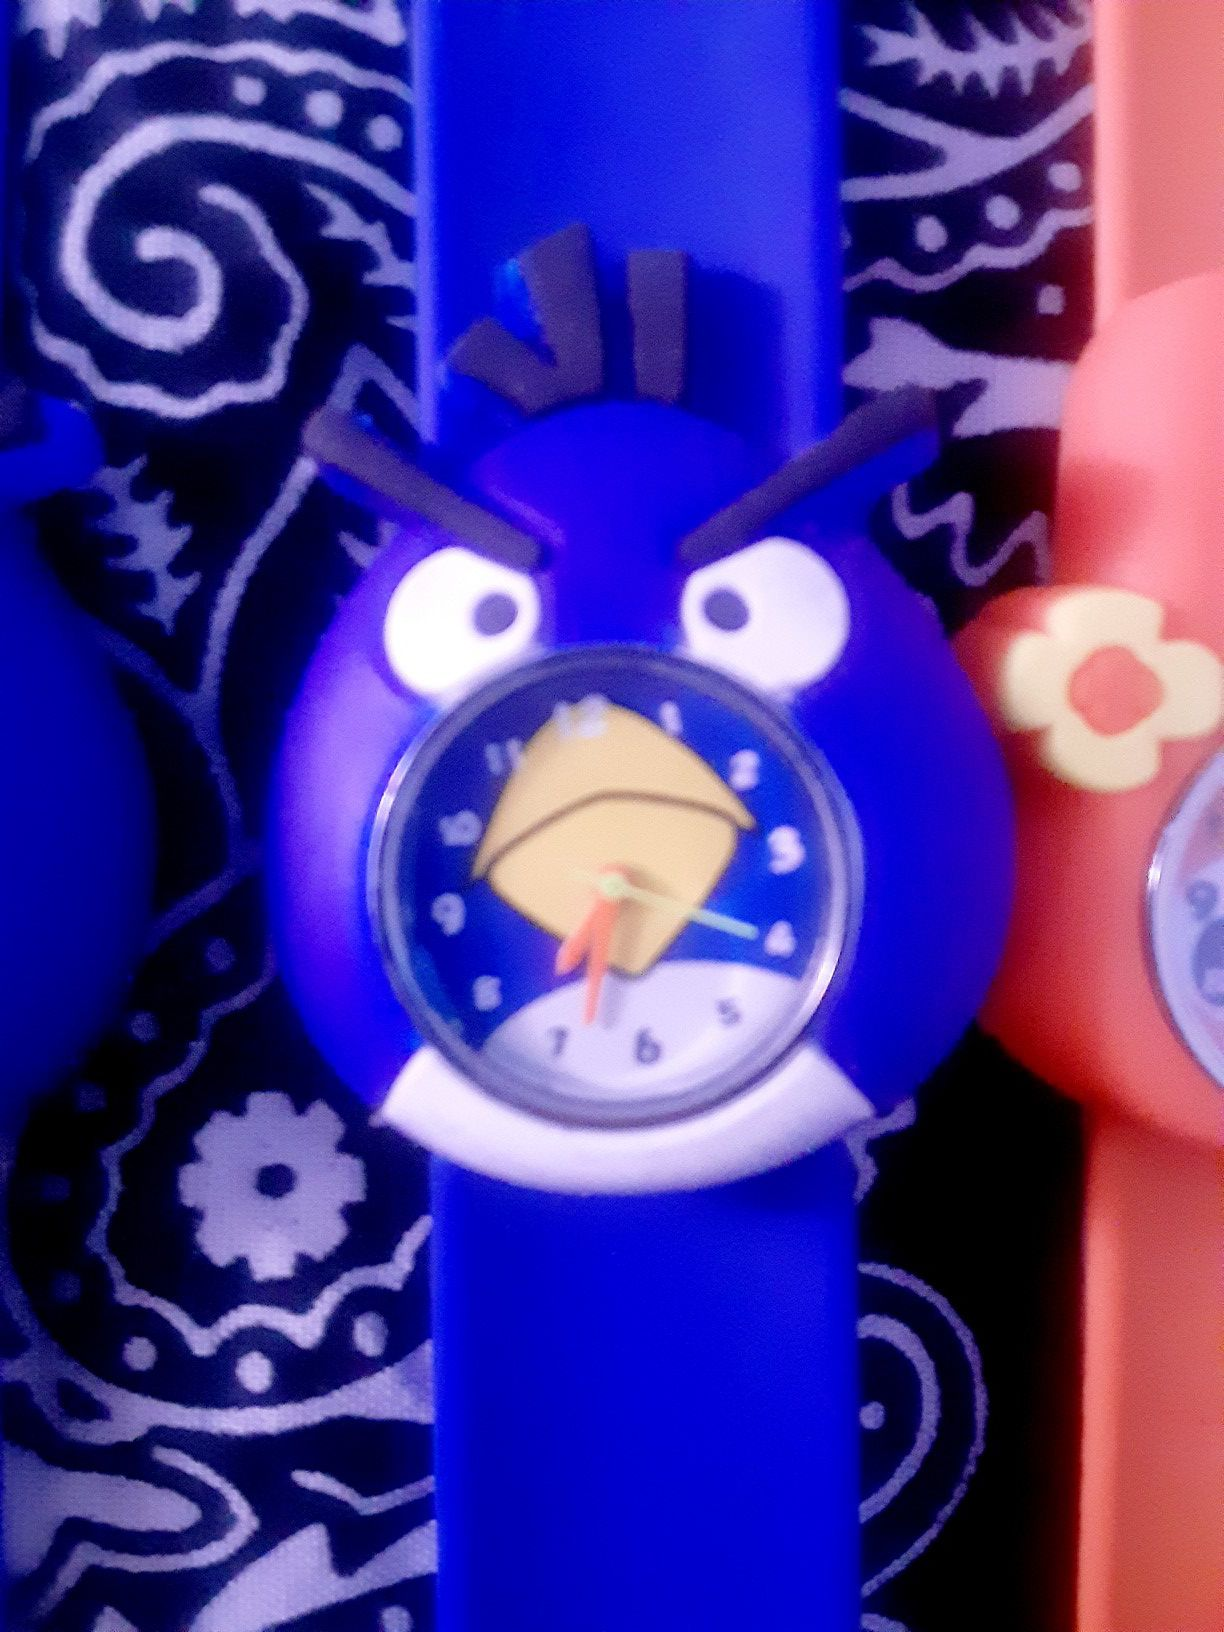 ANGRY BIRDS WATCH $5 EACH